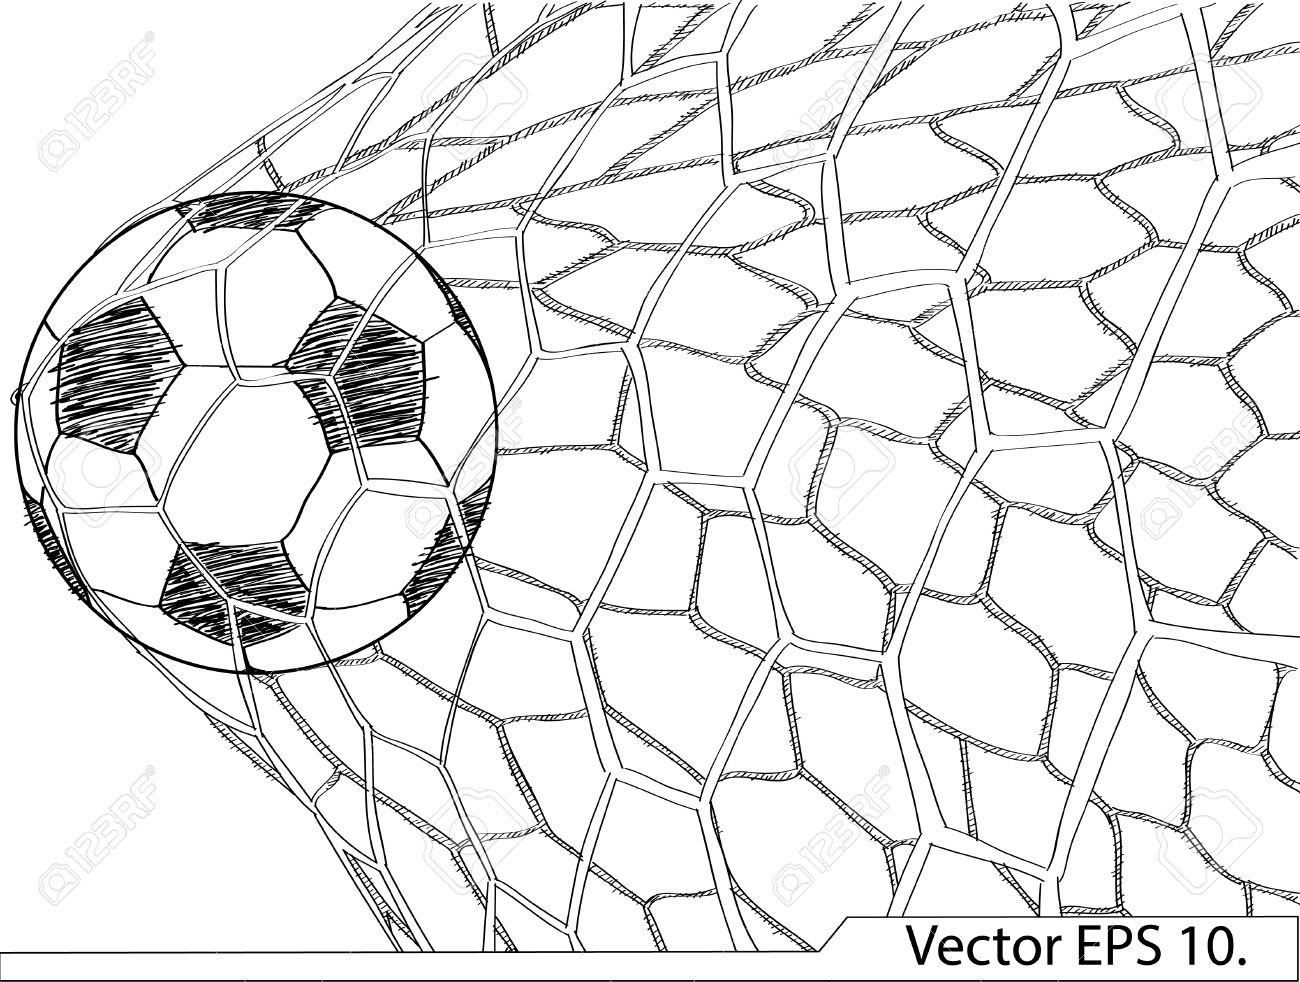 1300x982 Soccer Football In Goal Net Vector Sketched Up, Eps 10 Royalty